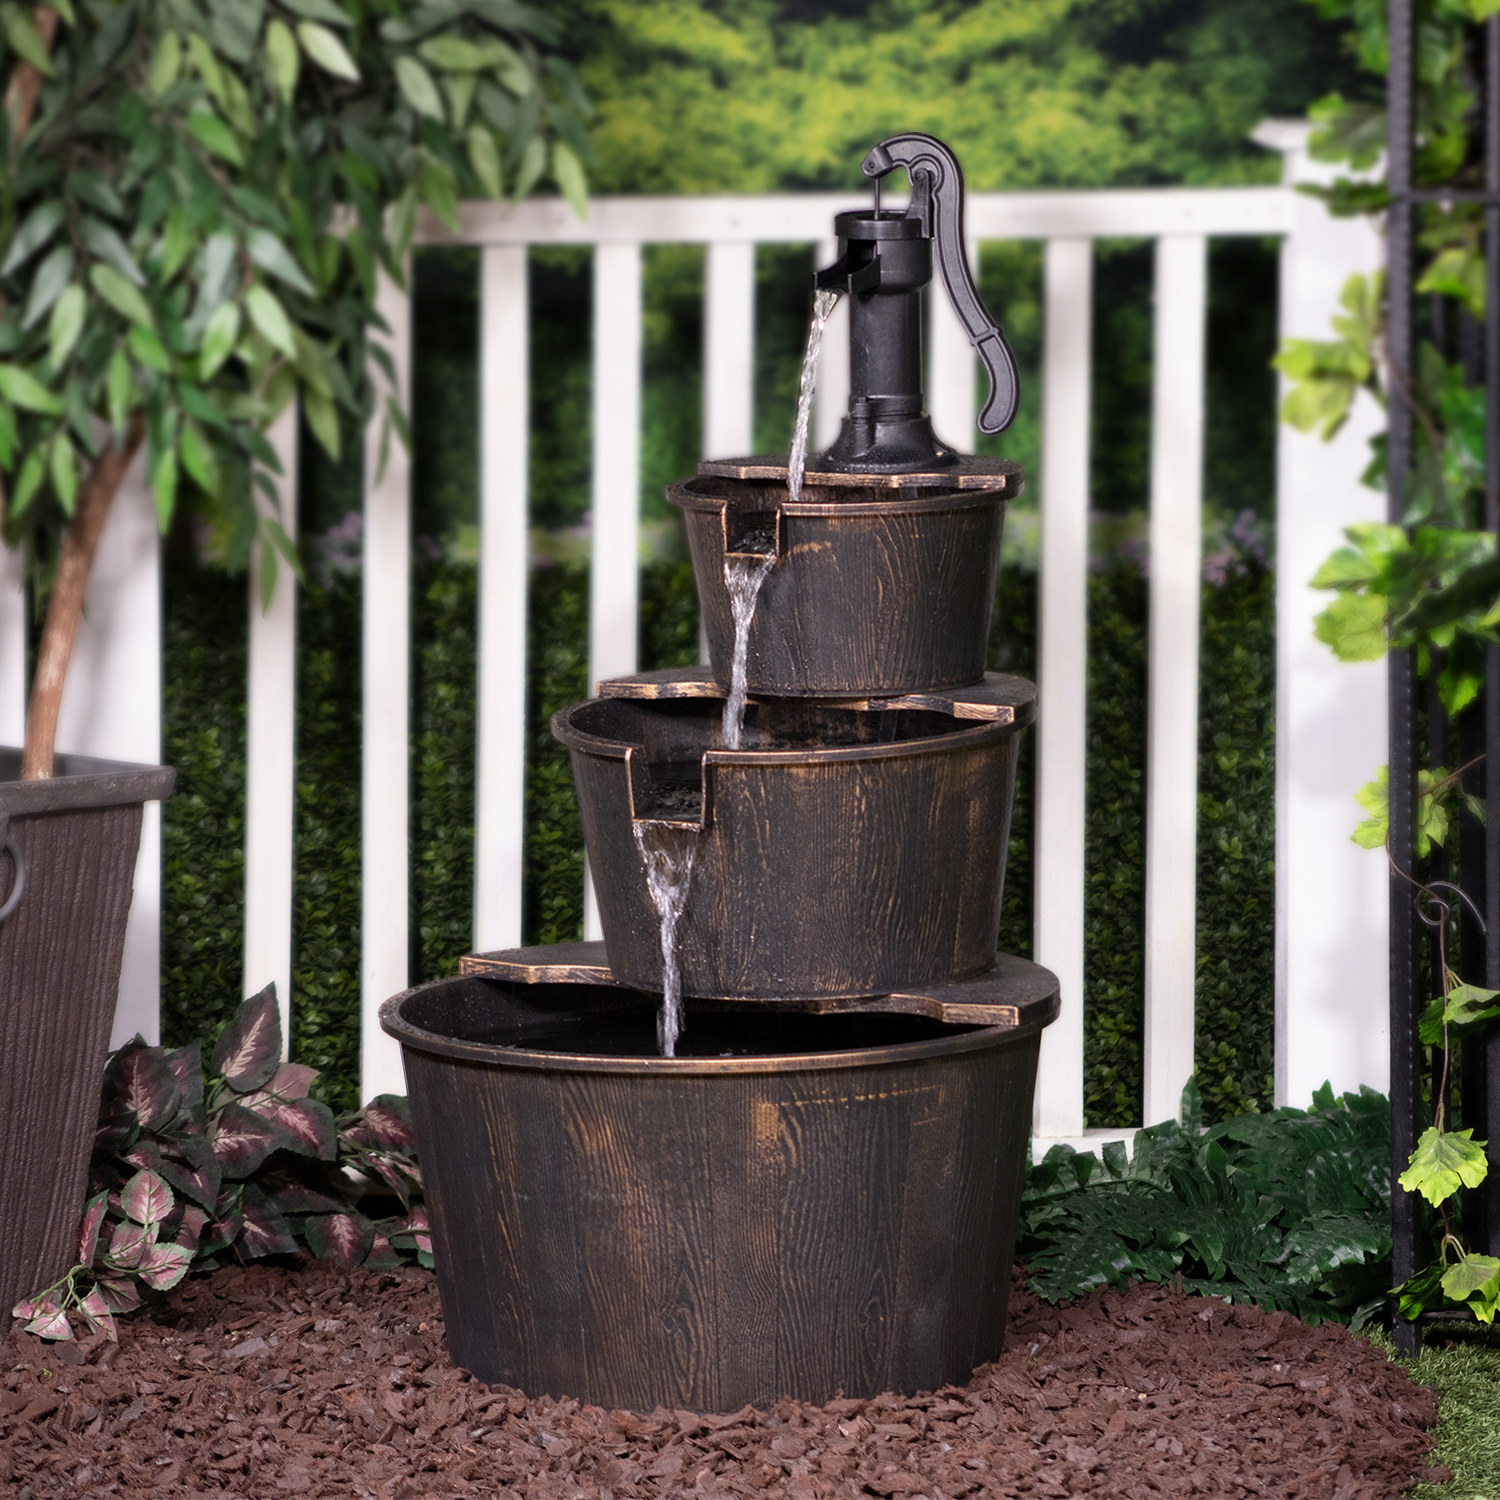 A three-tier, rusted pump fountain with water running into each basin